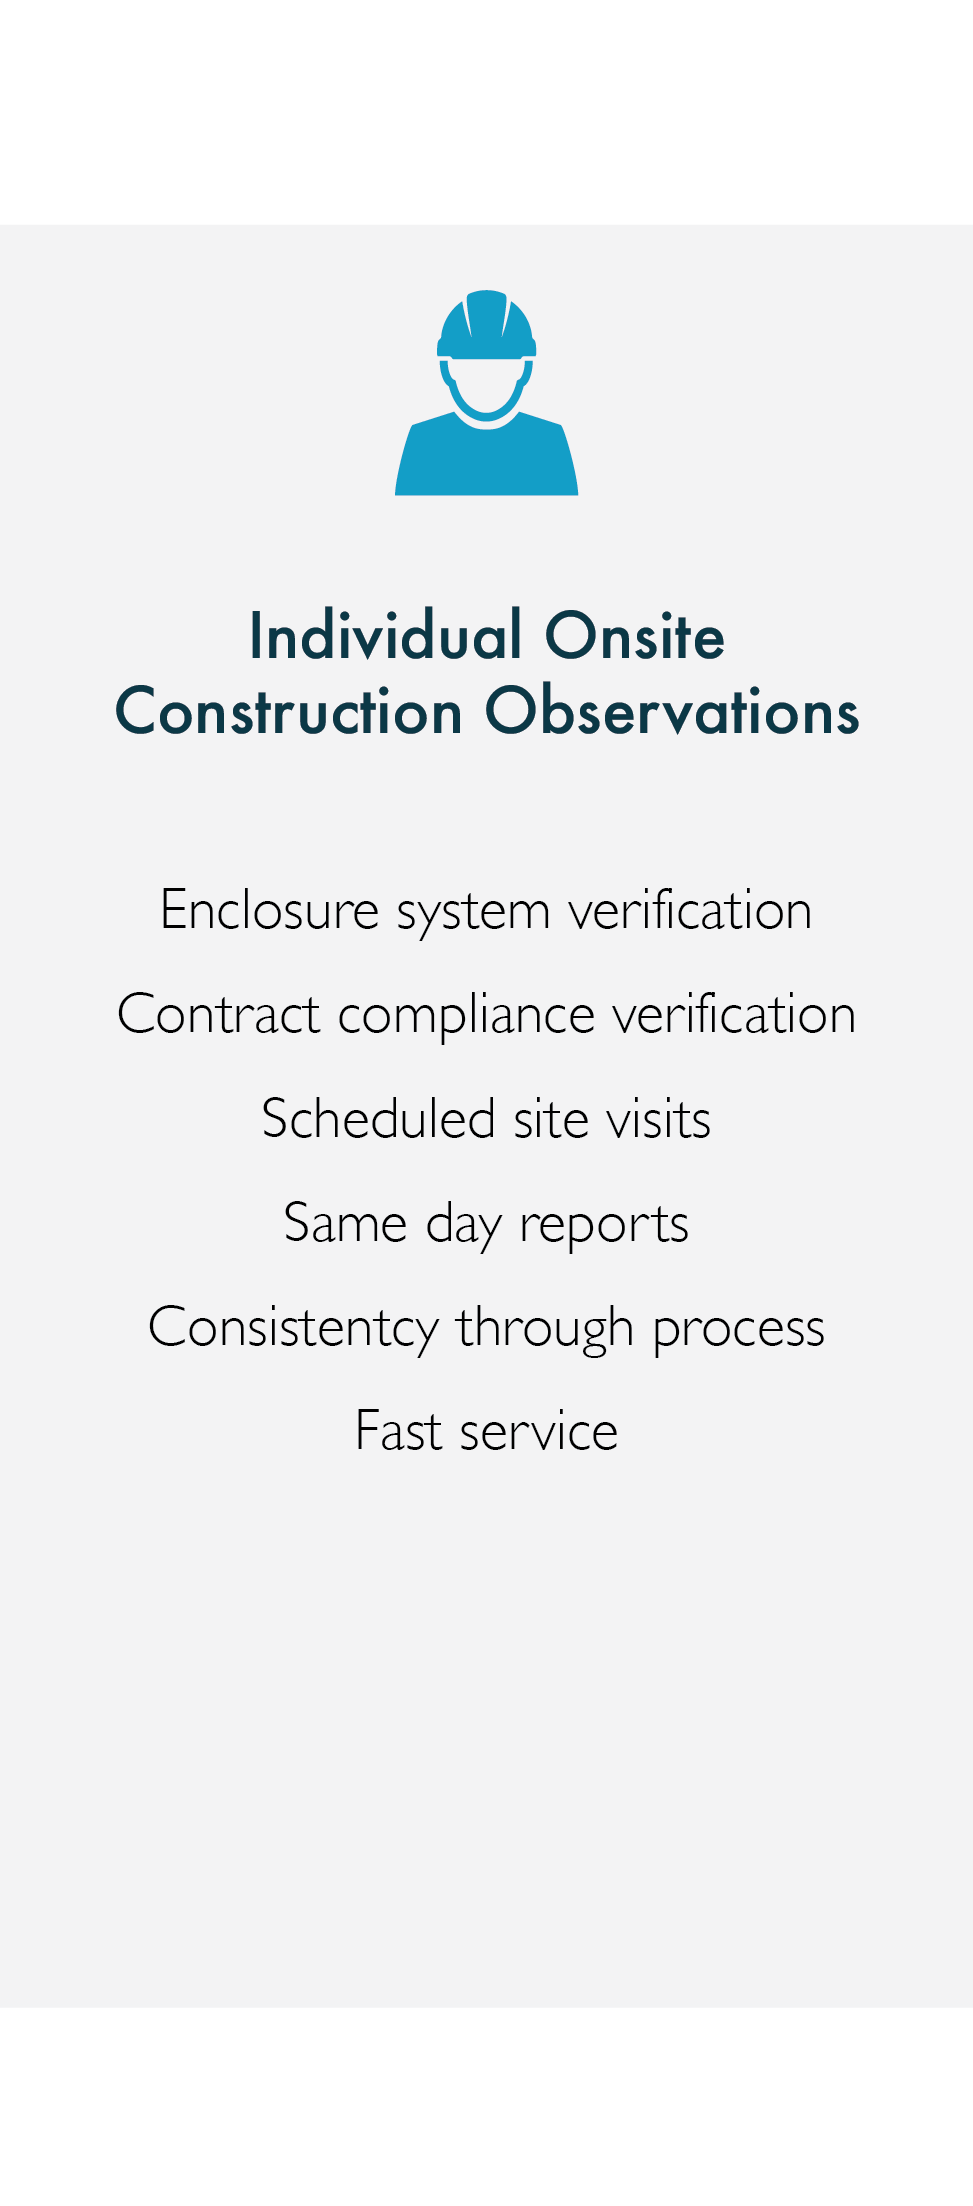 Individual Onsite Construction Observations